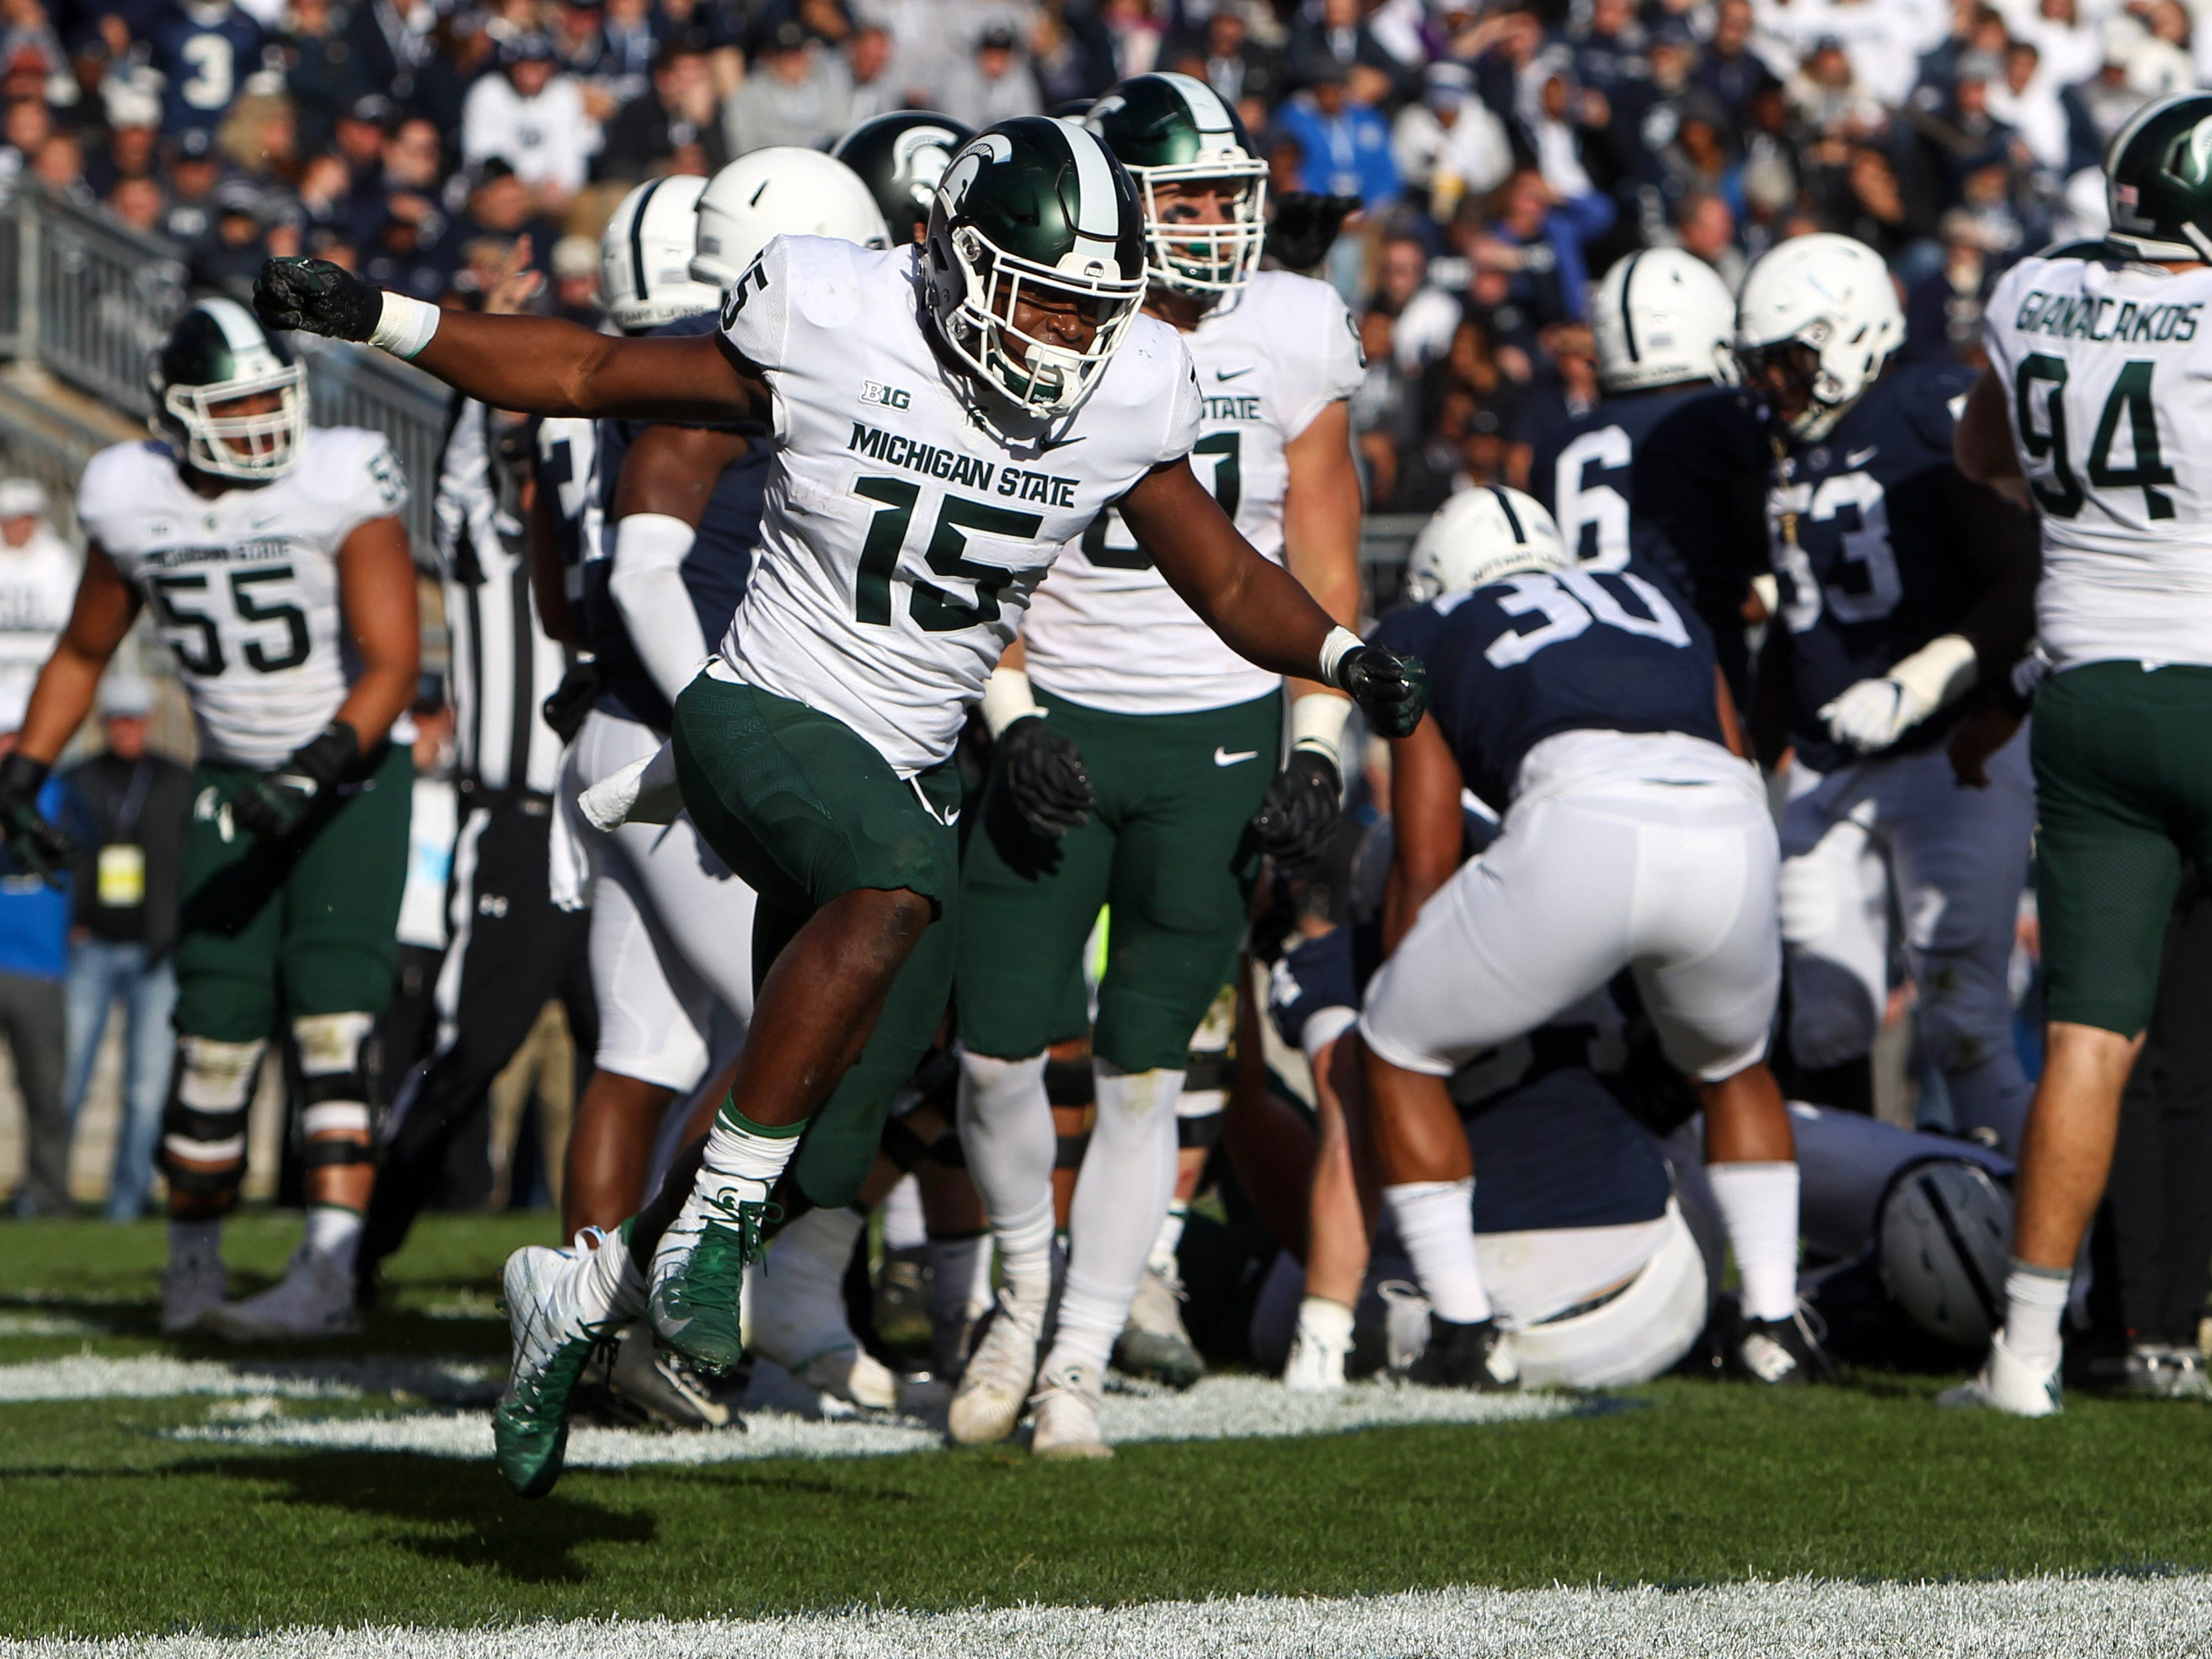 Michigan State Spartans running back La'Darius Jefferson (15) celebrates after scoring a touchdown during the second quarter against the Penn State Nittany Lions at Beaver Stadium.